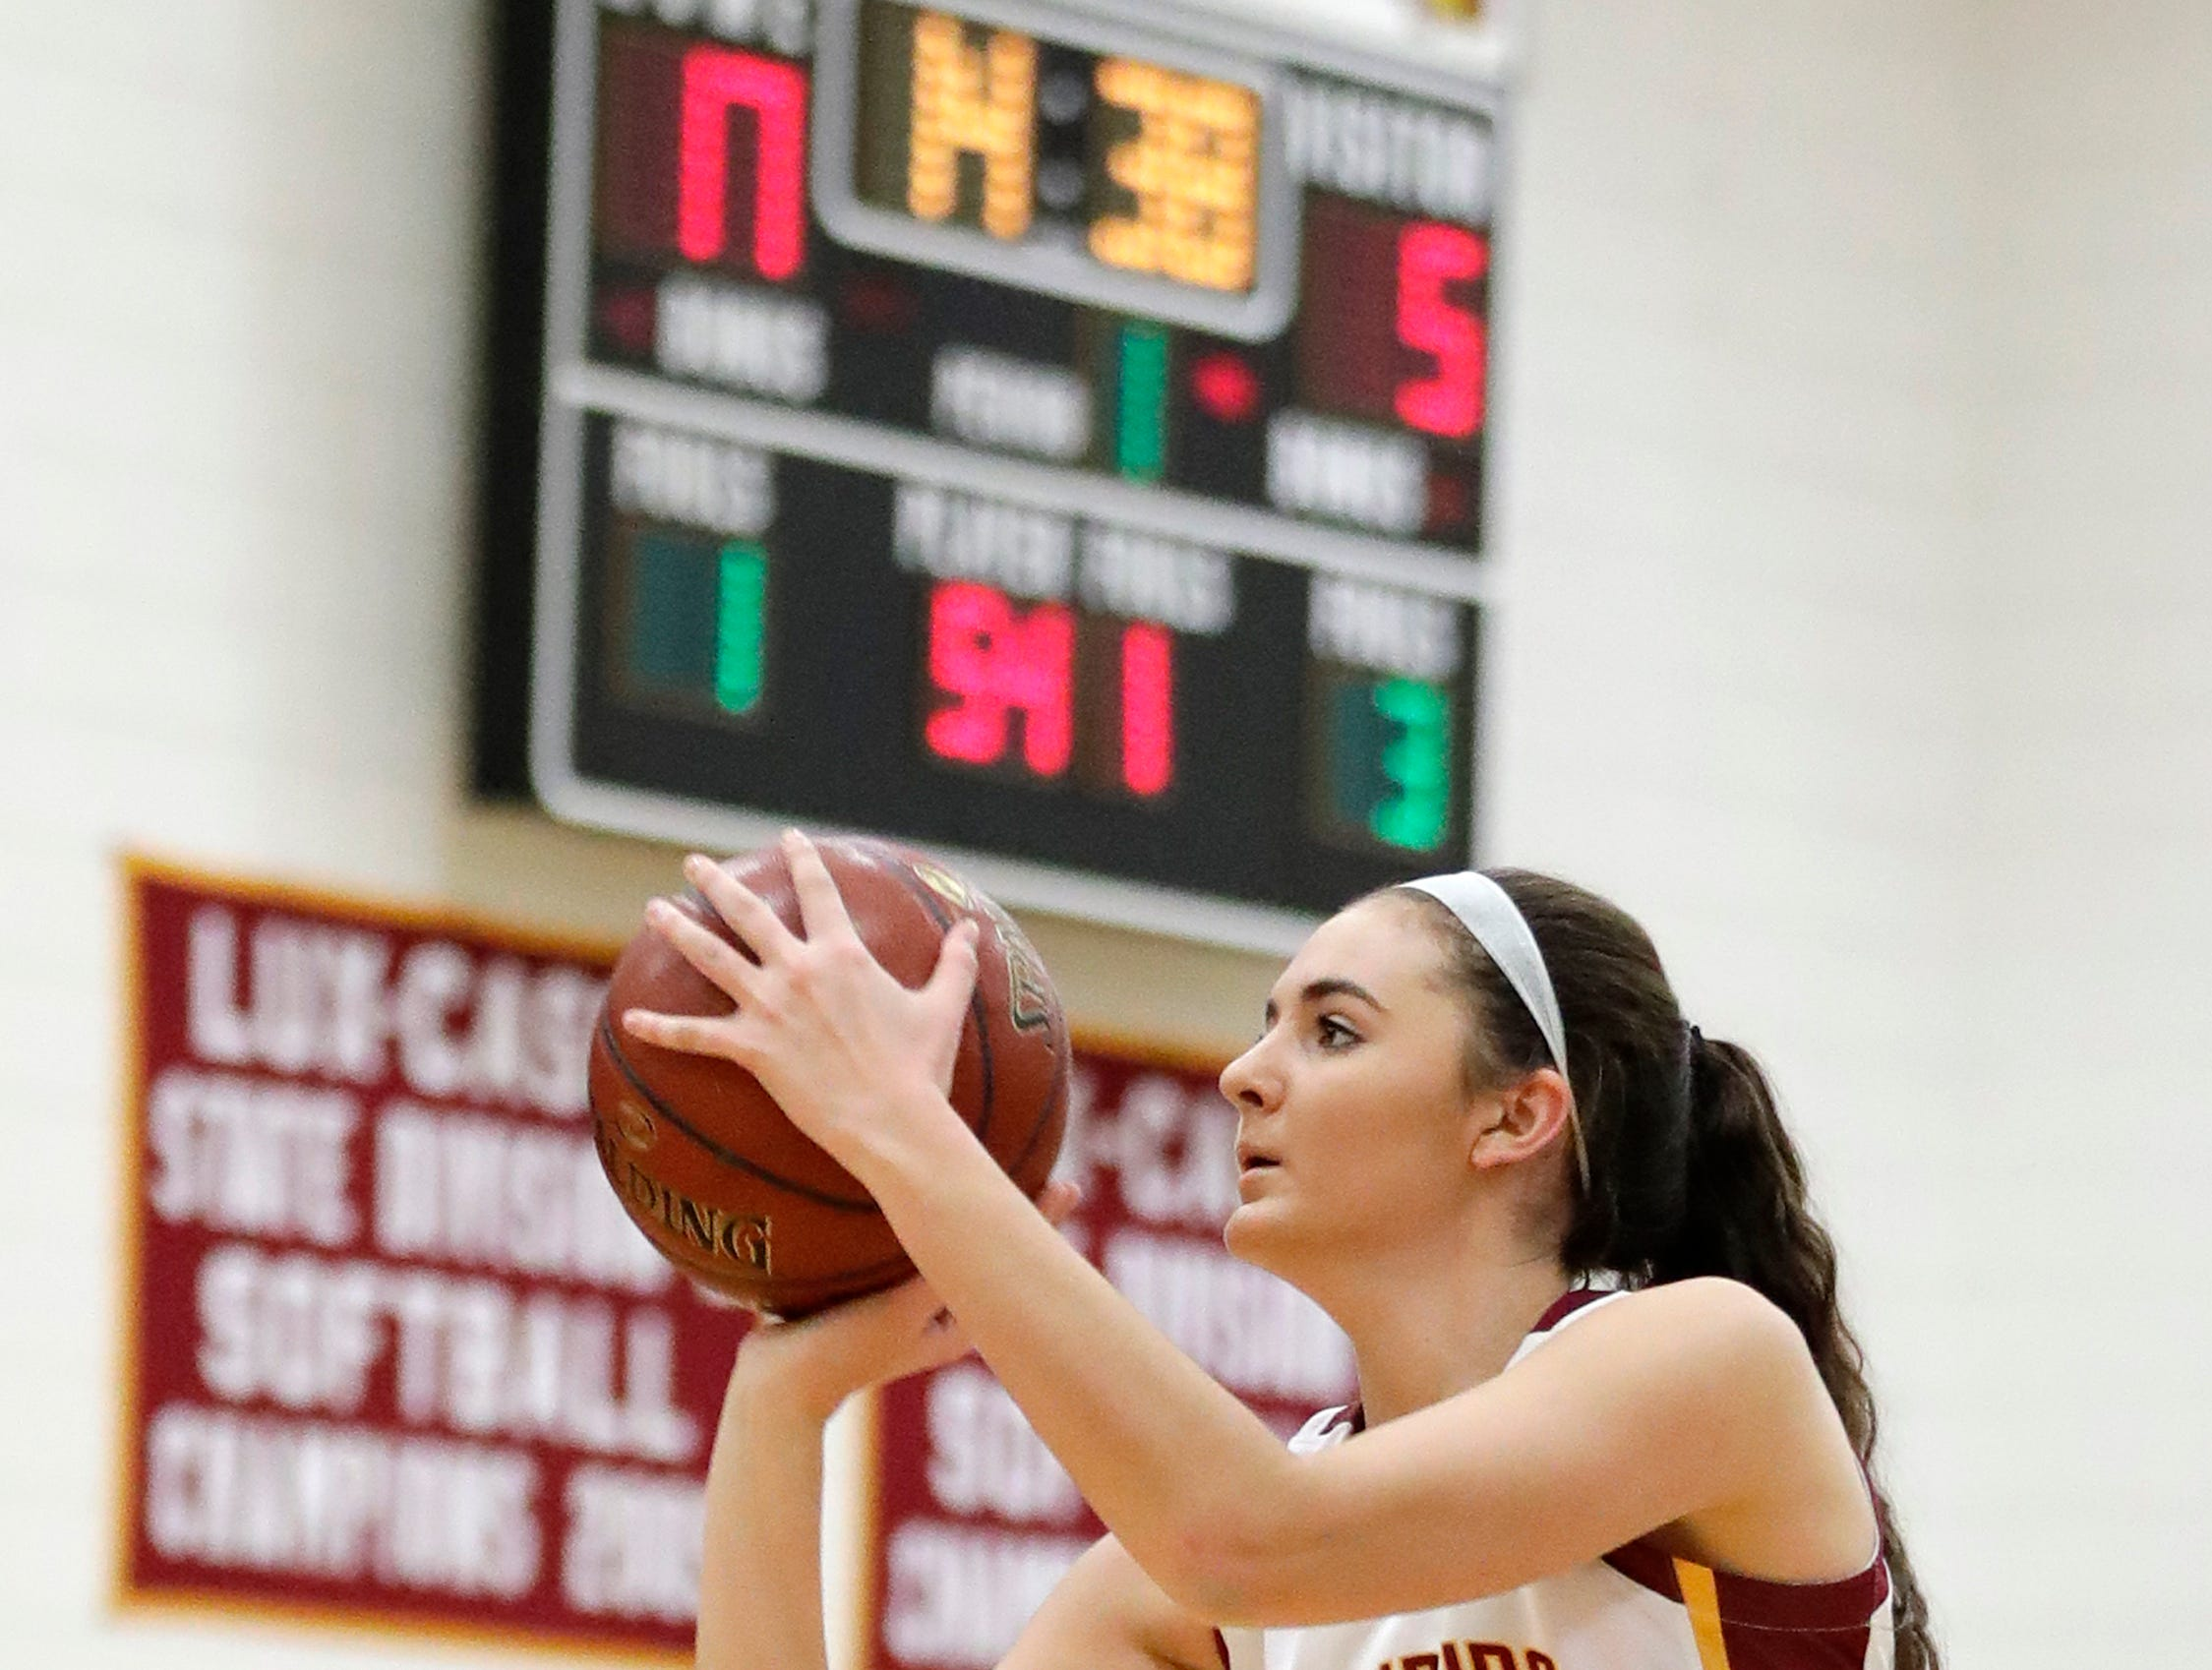 Luxemburg-Casco's Cassie Schiltz (3) shoots against Waupaca in a girls basketball game at Luxemburg-Casco high school on Thursday, January 10, 2019 in Luxemburg, Wis.